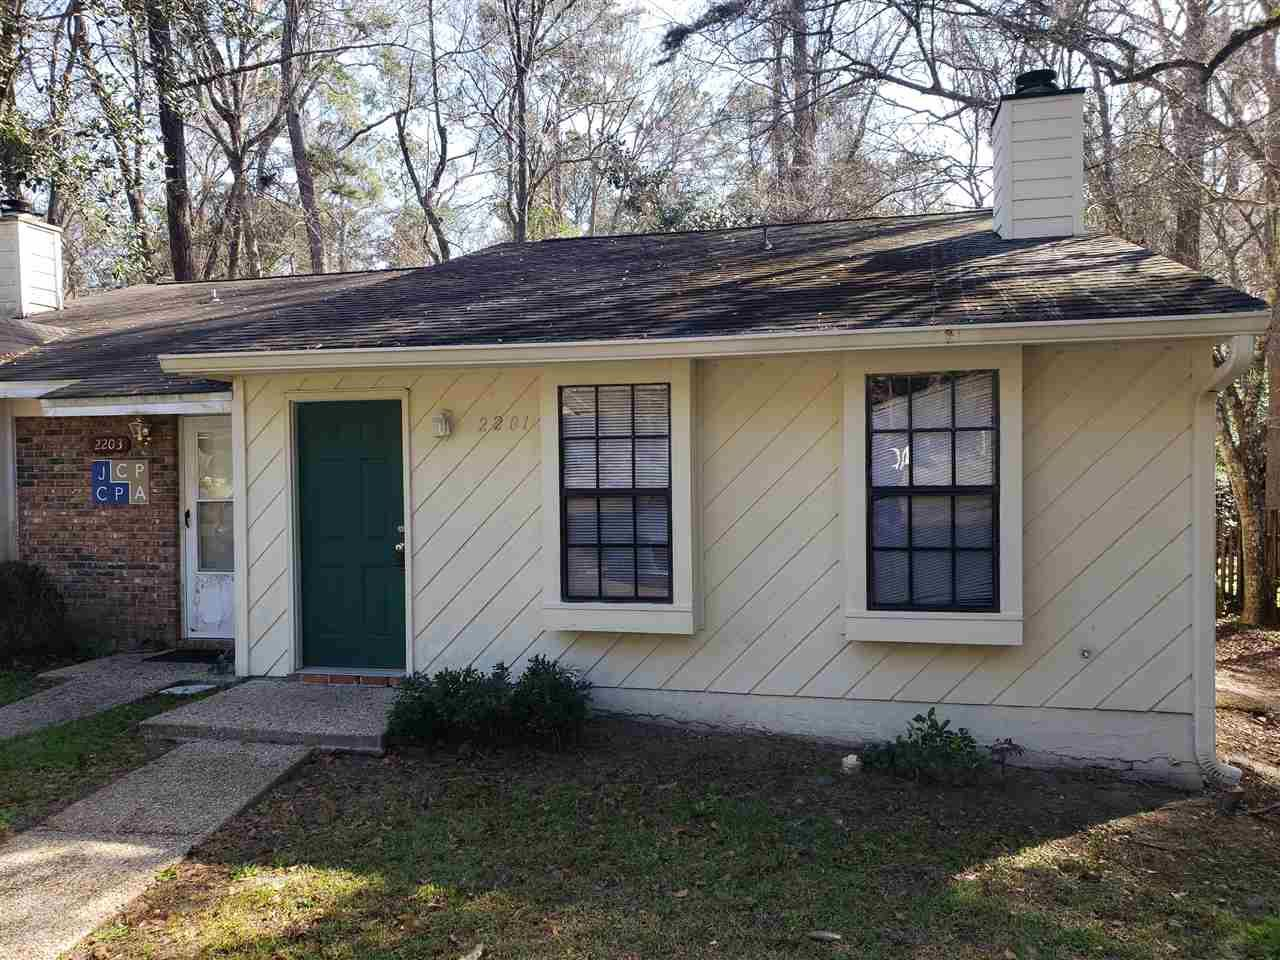 Photo for 2201 Victory Garden Lane, TALLAHASSEE, FL 32301 (MLS # 328957)